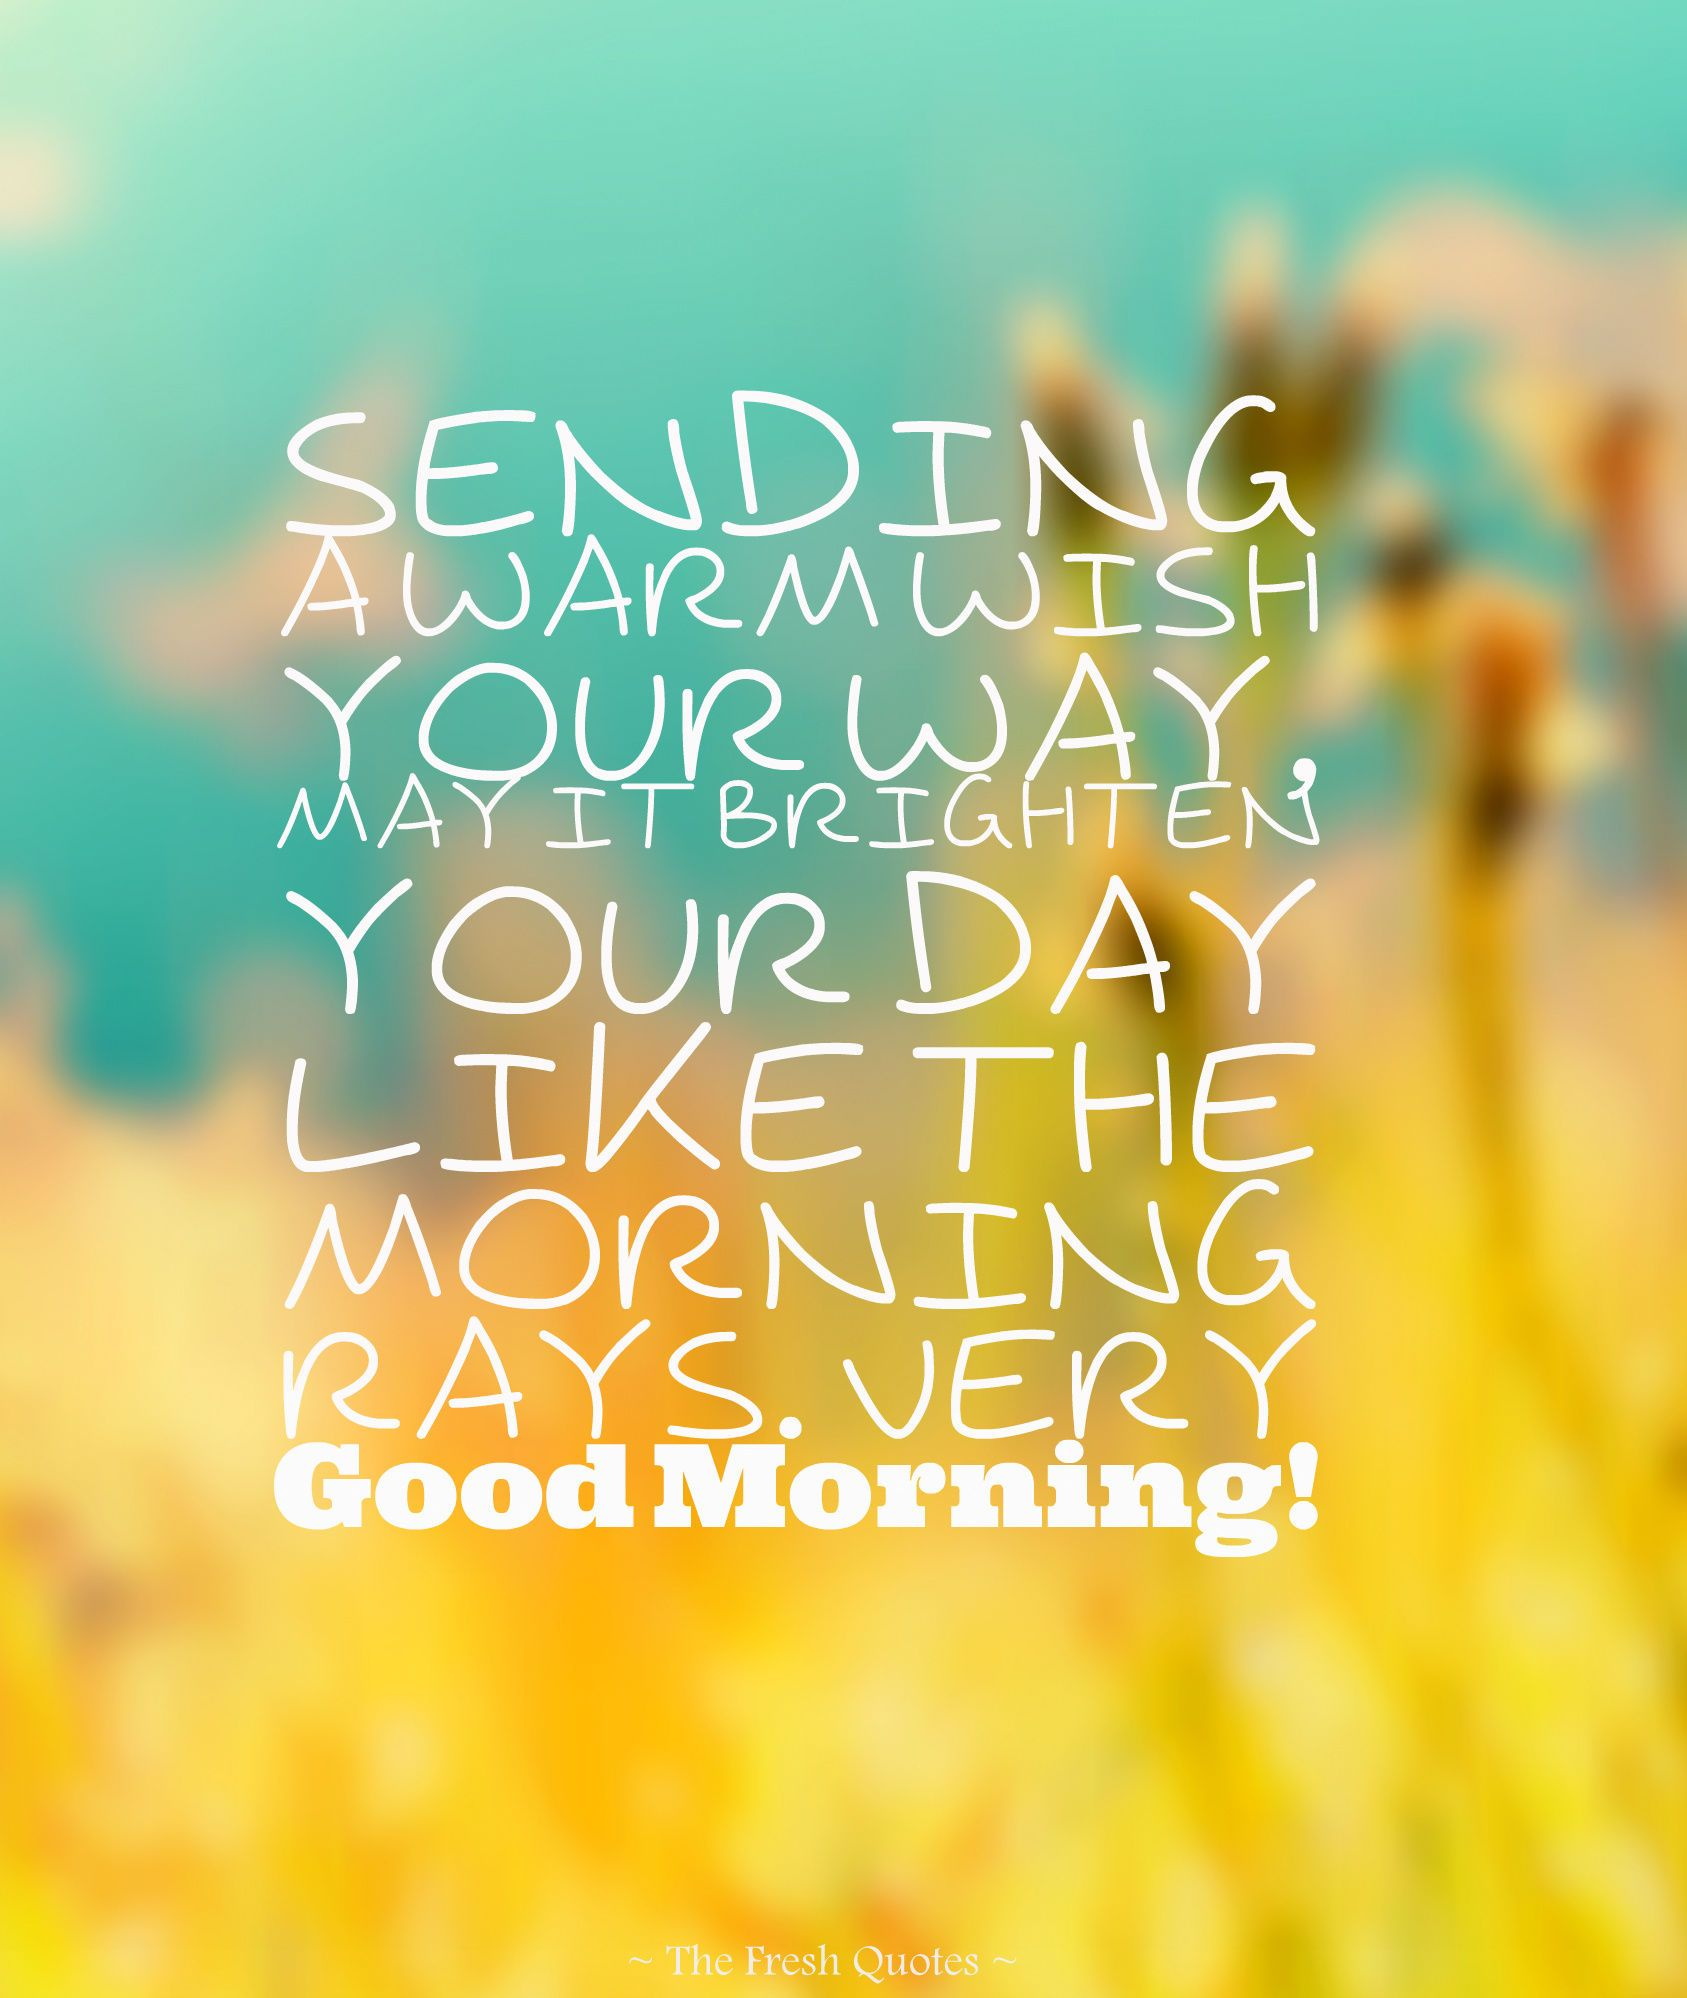 Sending a warm wish your way good morning morning good morning sending a warm wish your way good morning morning good morning morning quotes good morning quotes good morning wishes good morning greetings m4hsunfo